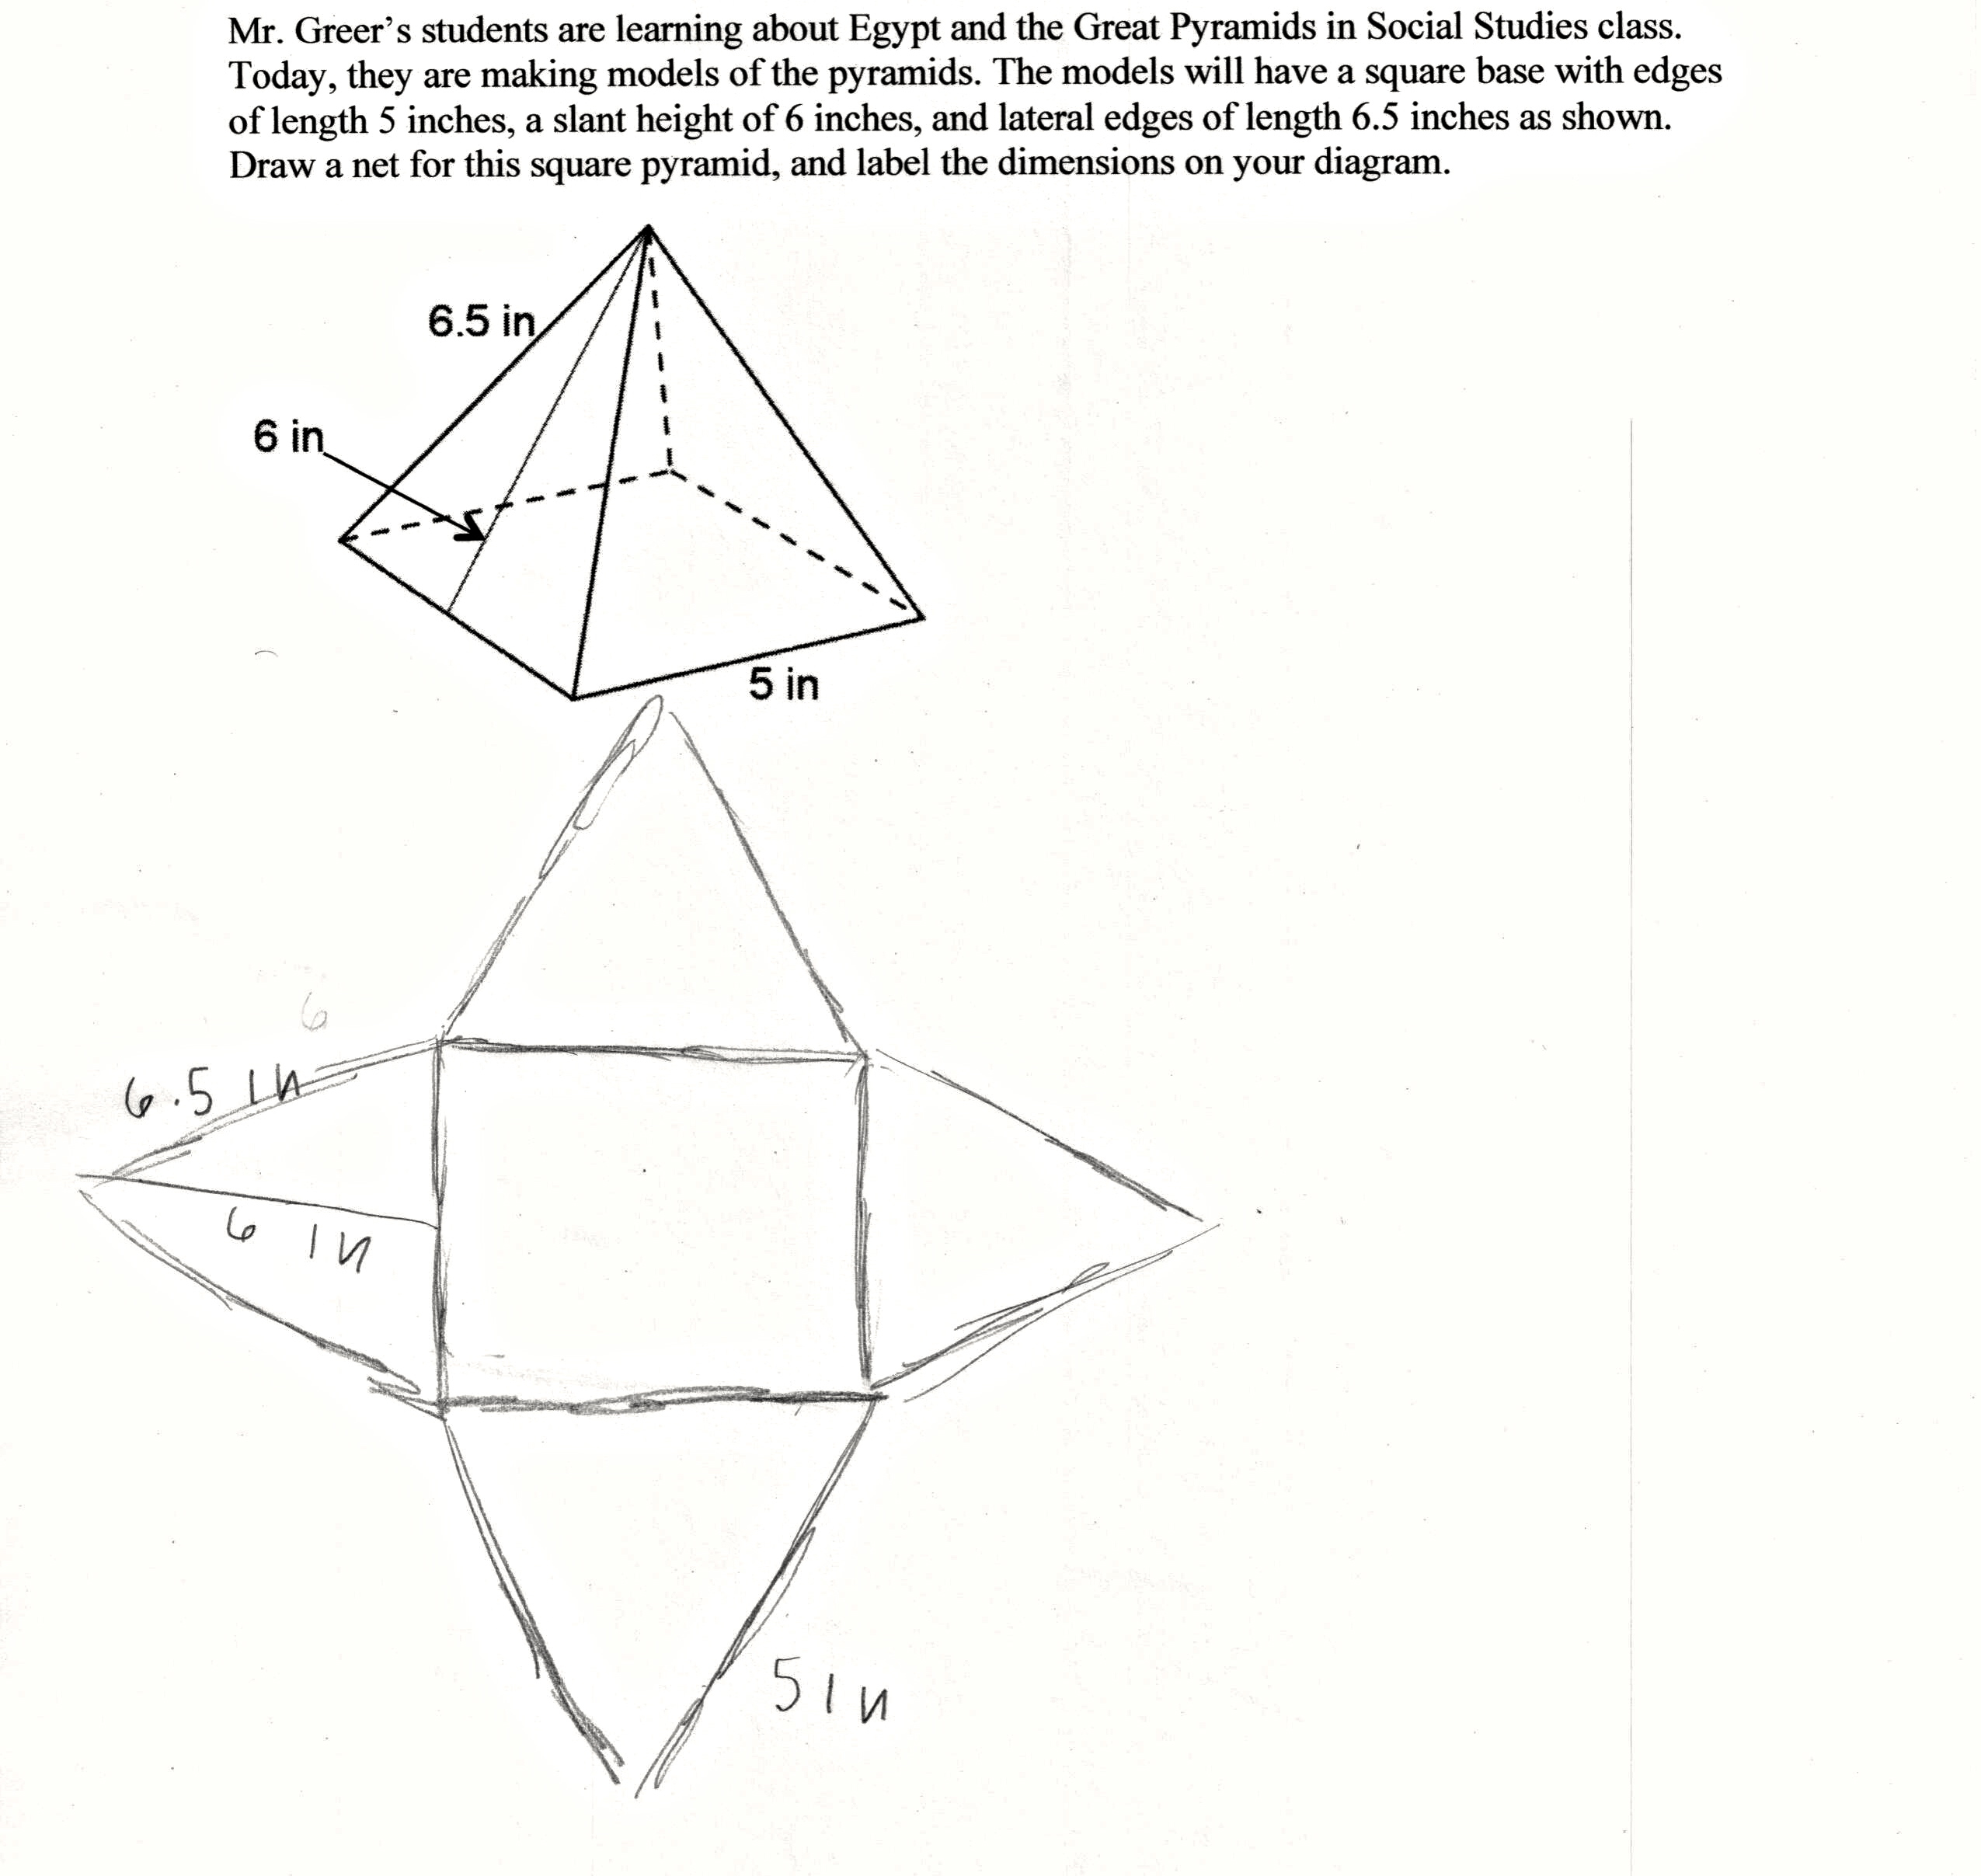 Drawn pyramid prism Draw more of the